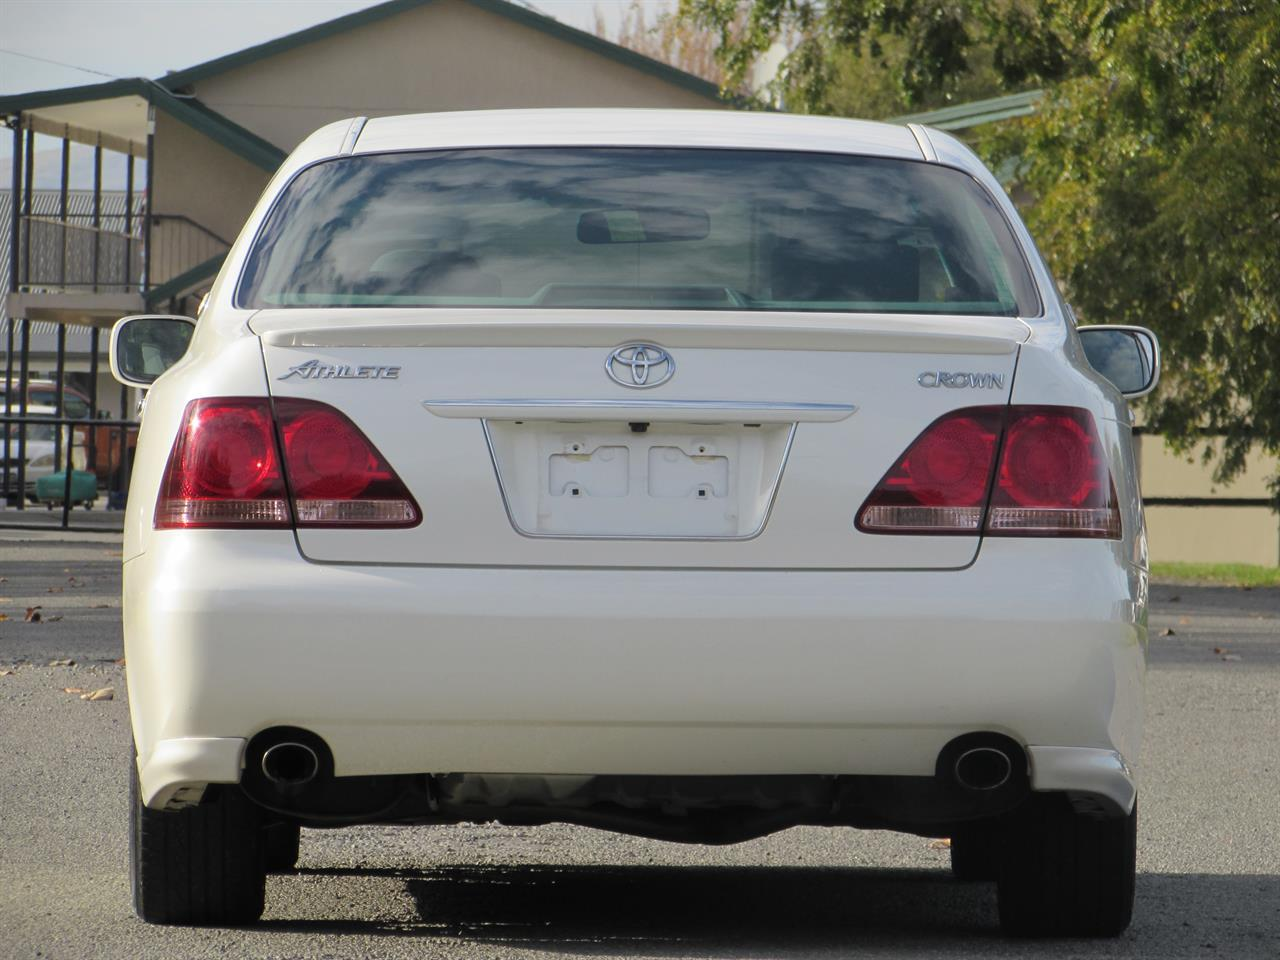 image-4, 2006 Toyota Crown Athlete at Christchurch